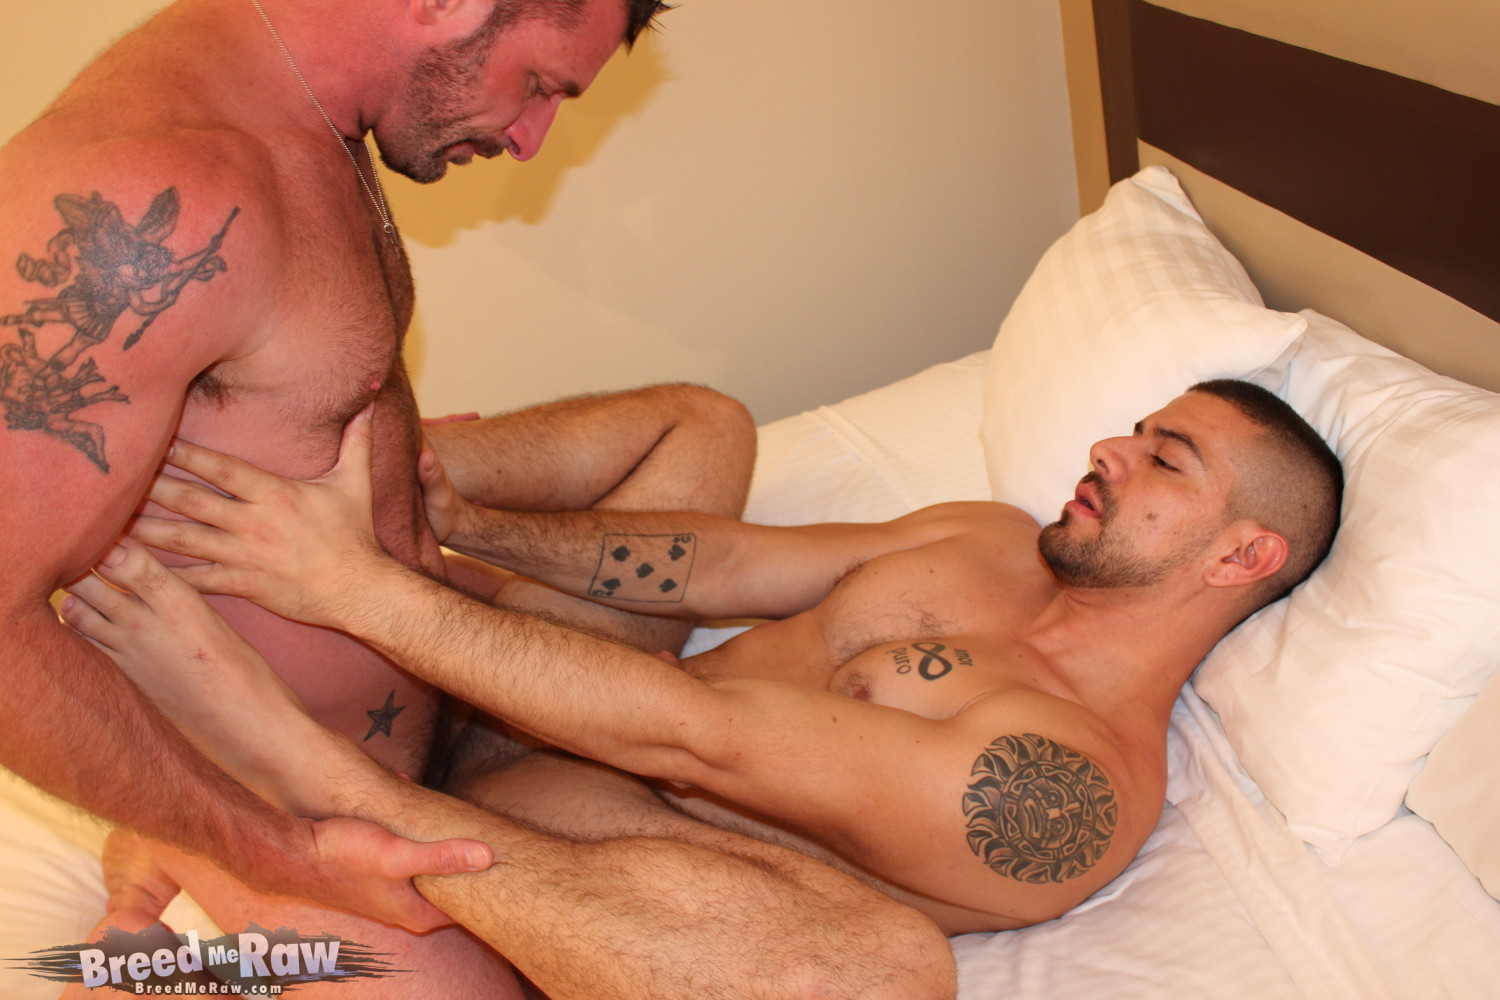 Breed Me Raw Morgan Black and Dominic Sol bareback 12 Breed Me Raw: Morgan Black and Dominic Sol